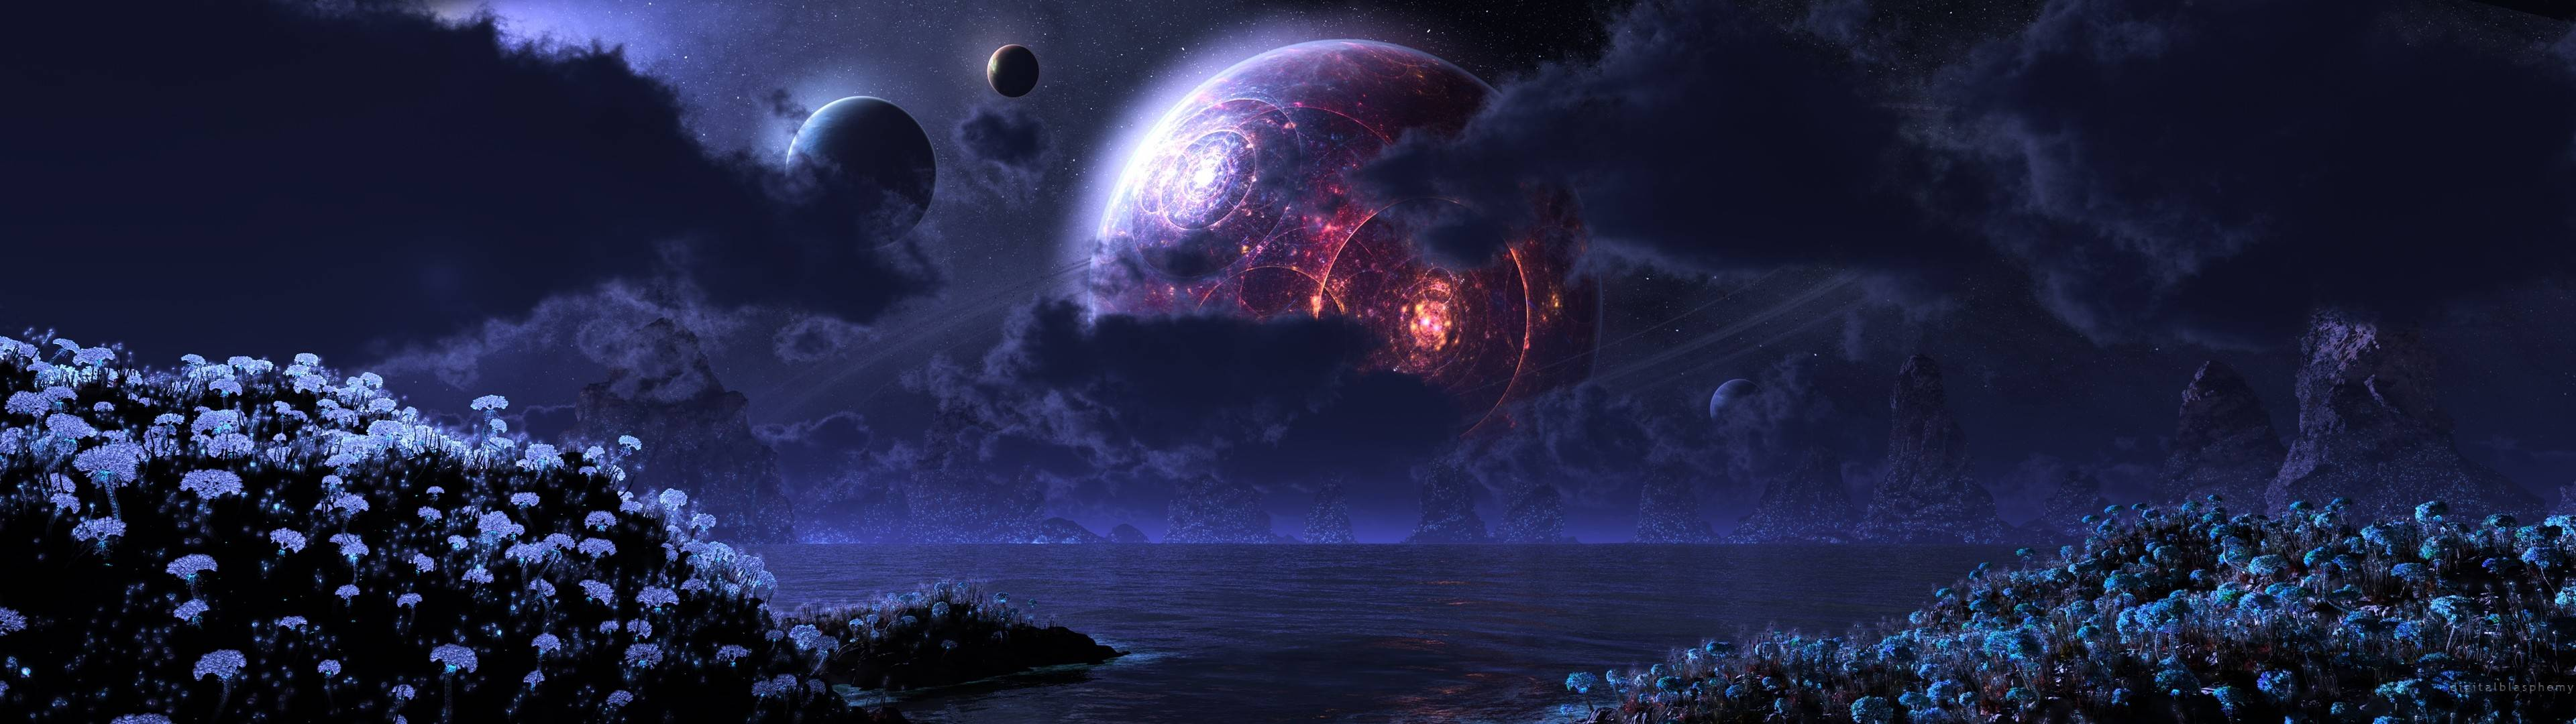 Sci-Fi-landscape-dual-monitor-wallpaper-wp38010042